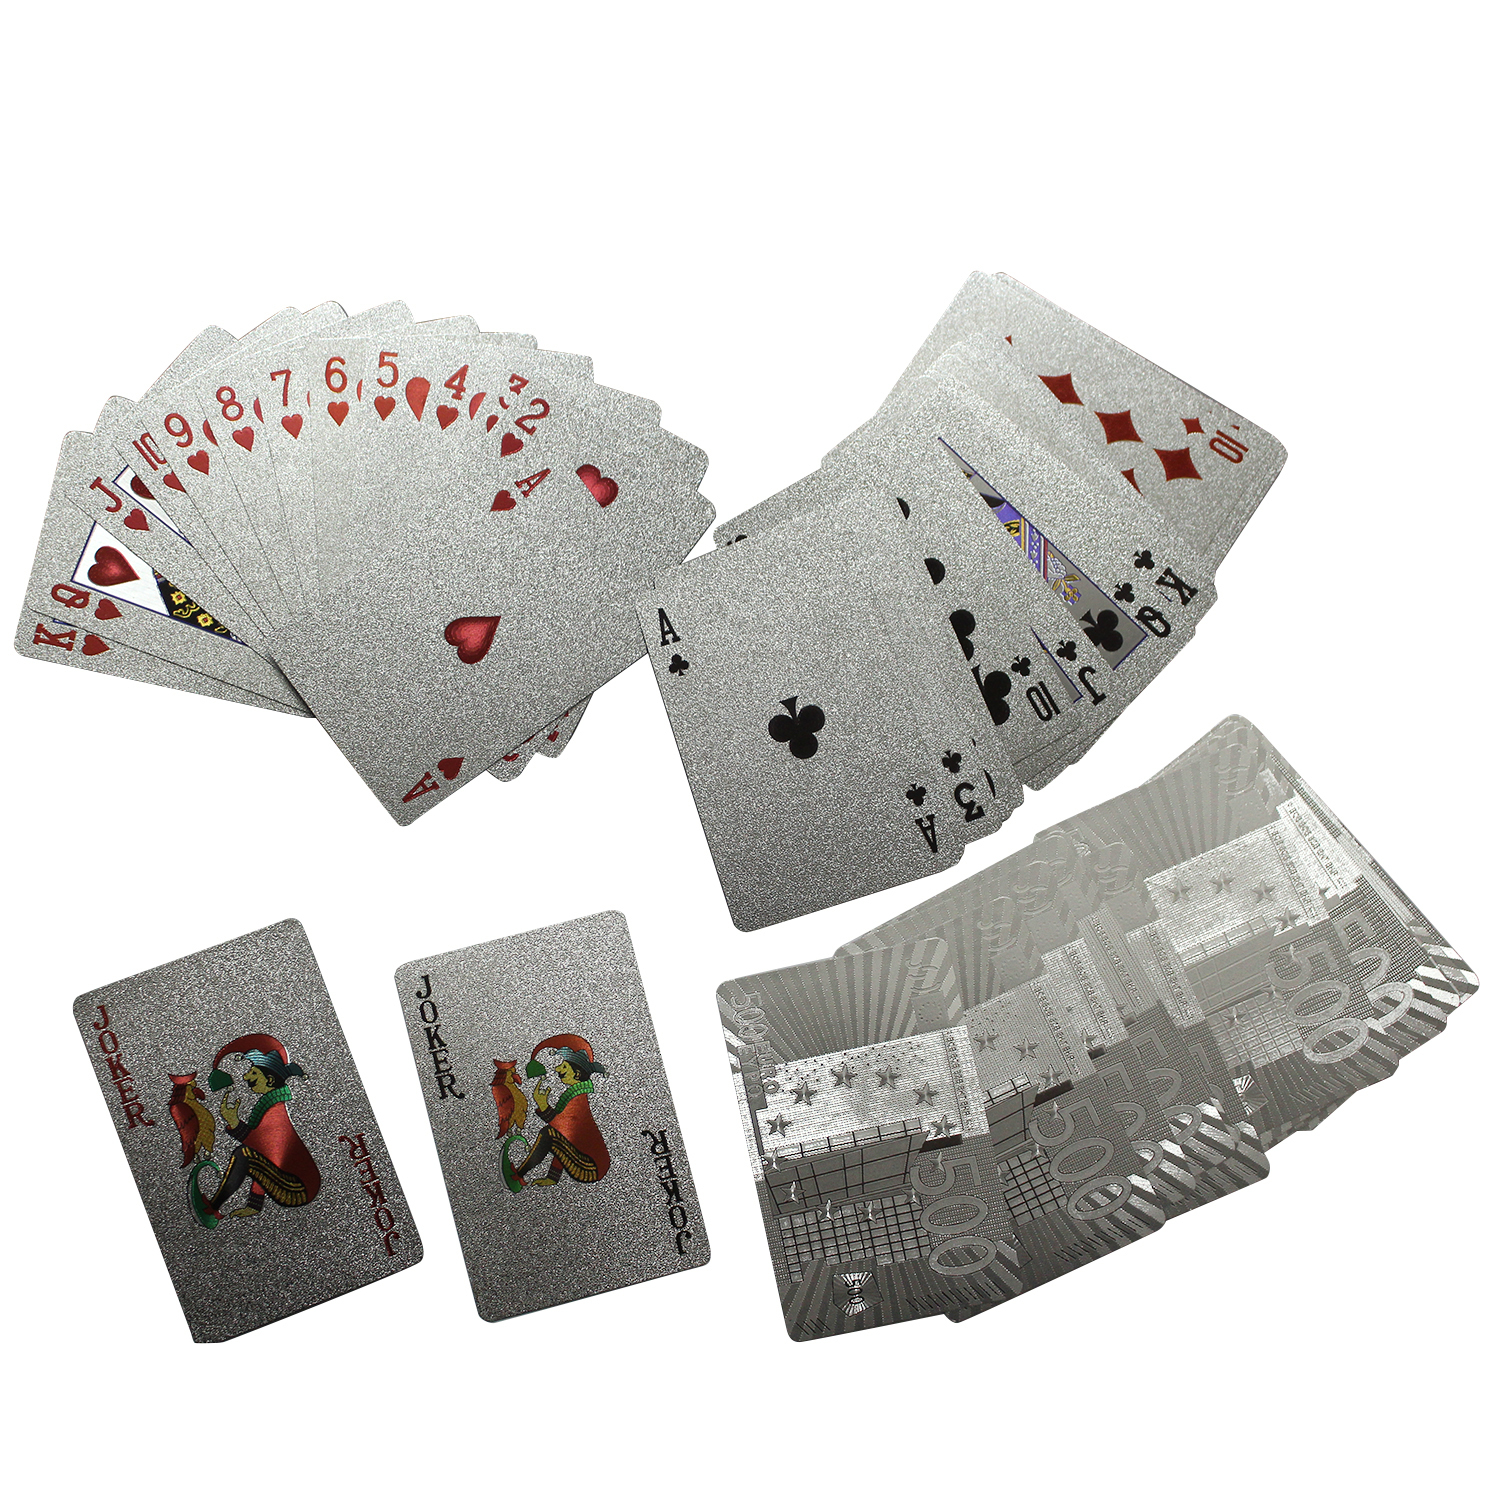 24K Golden Playing Cards Deck Silver Foil Poker Set Magic Card Durable Waterproof Game Cards Euro US Dollar Design Poler Cards 1 image